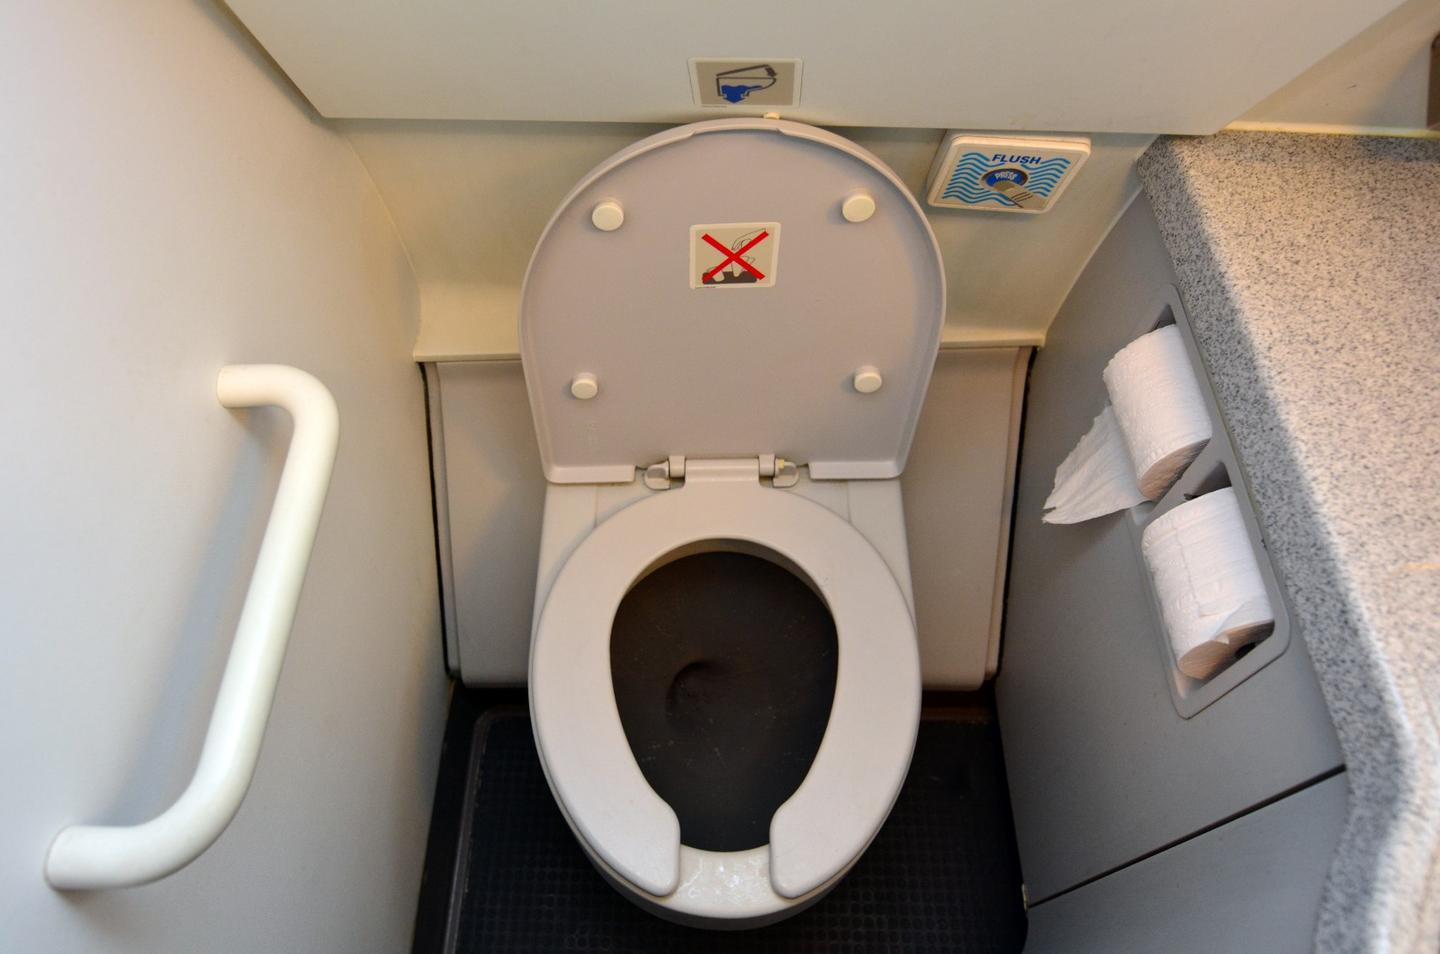 The system could be retrofitted to existing airplane toilets, such as this